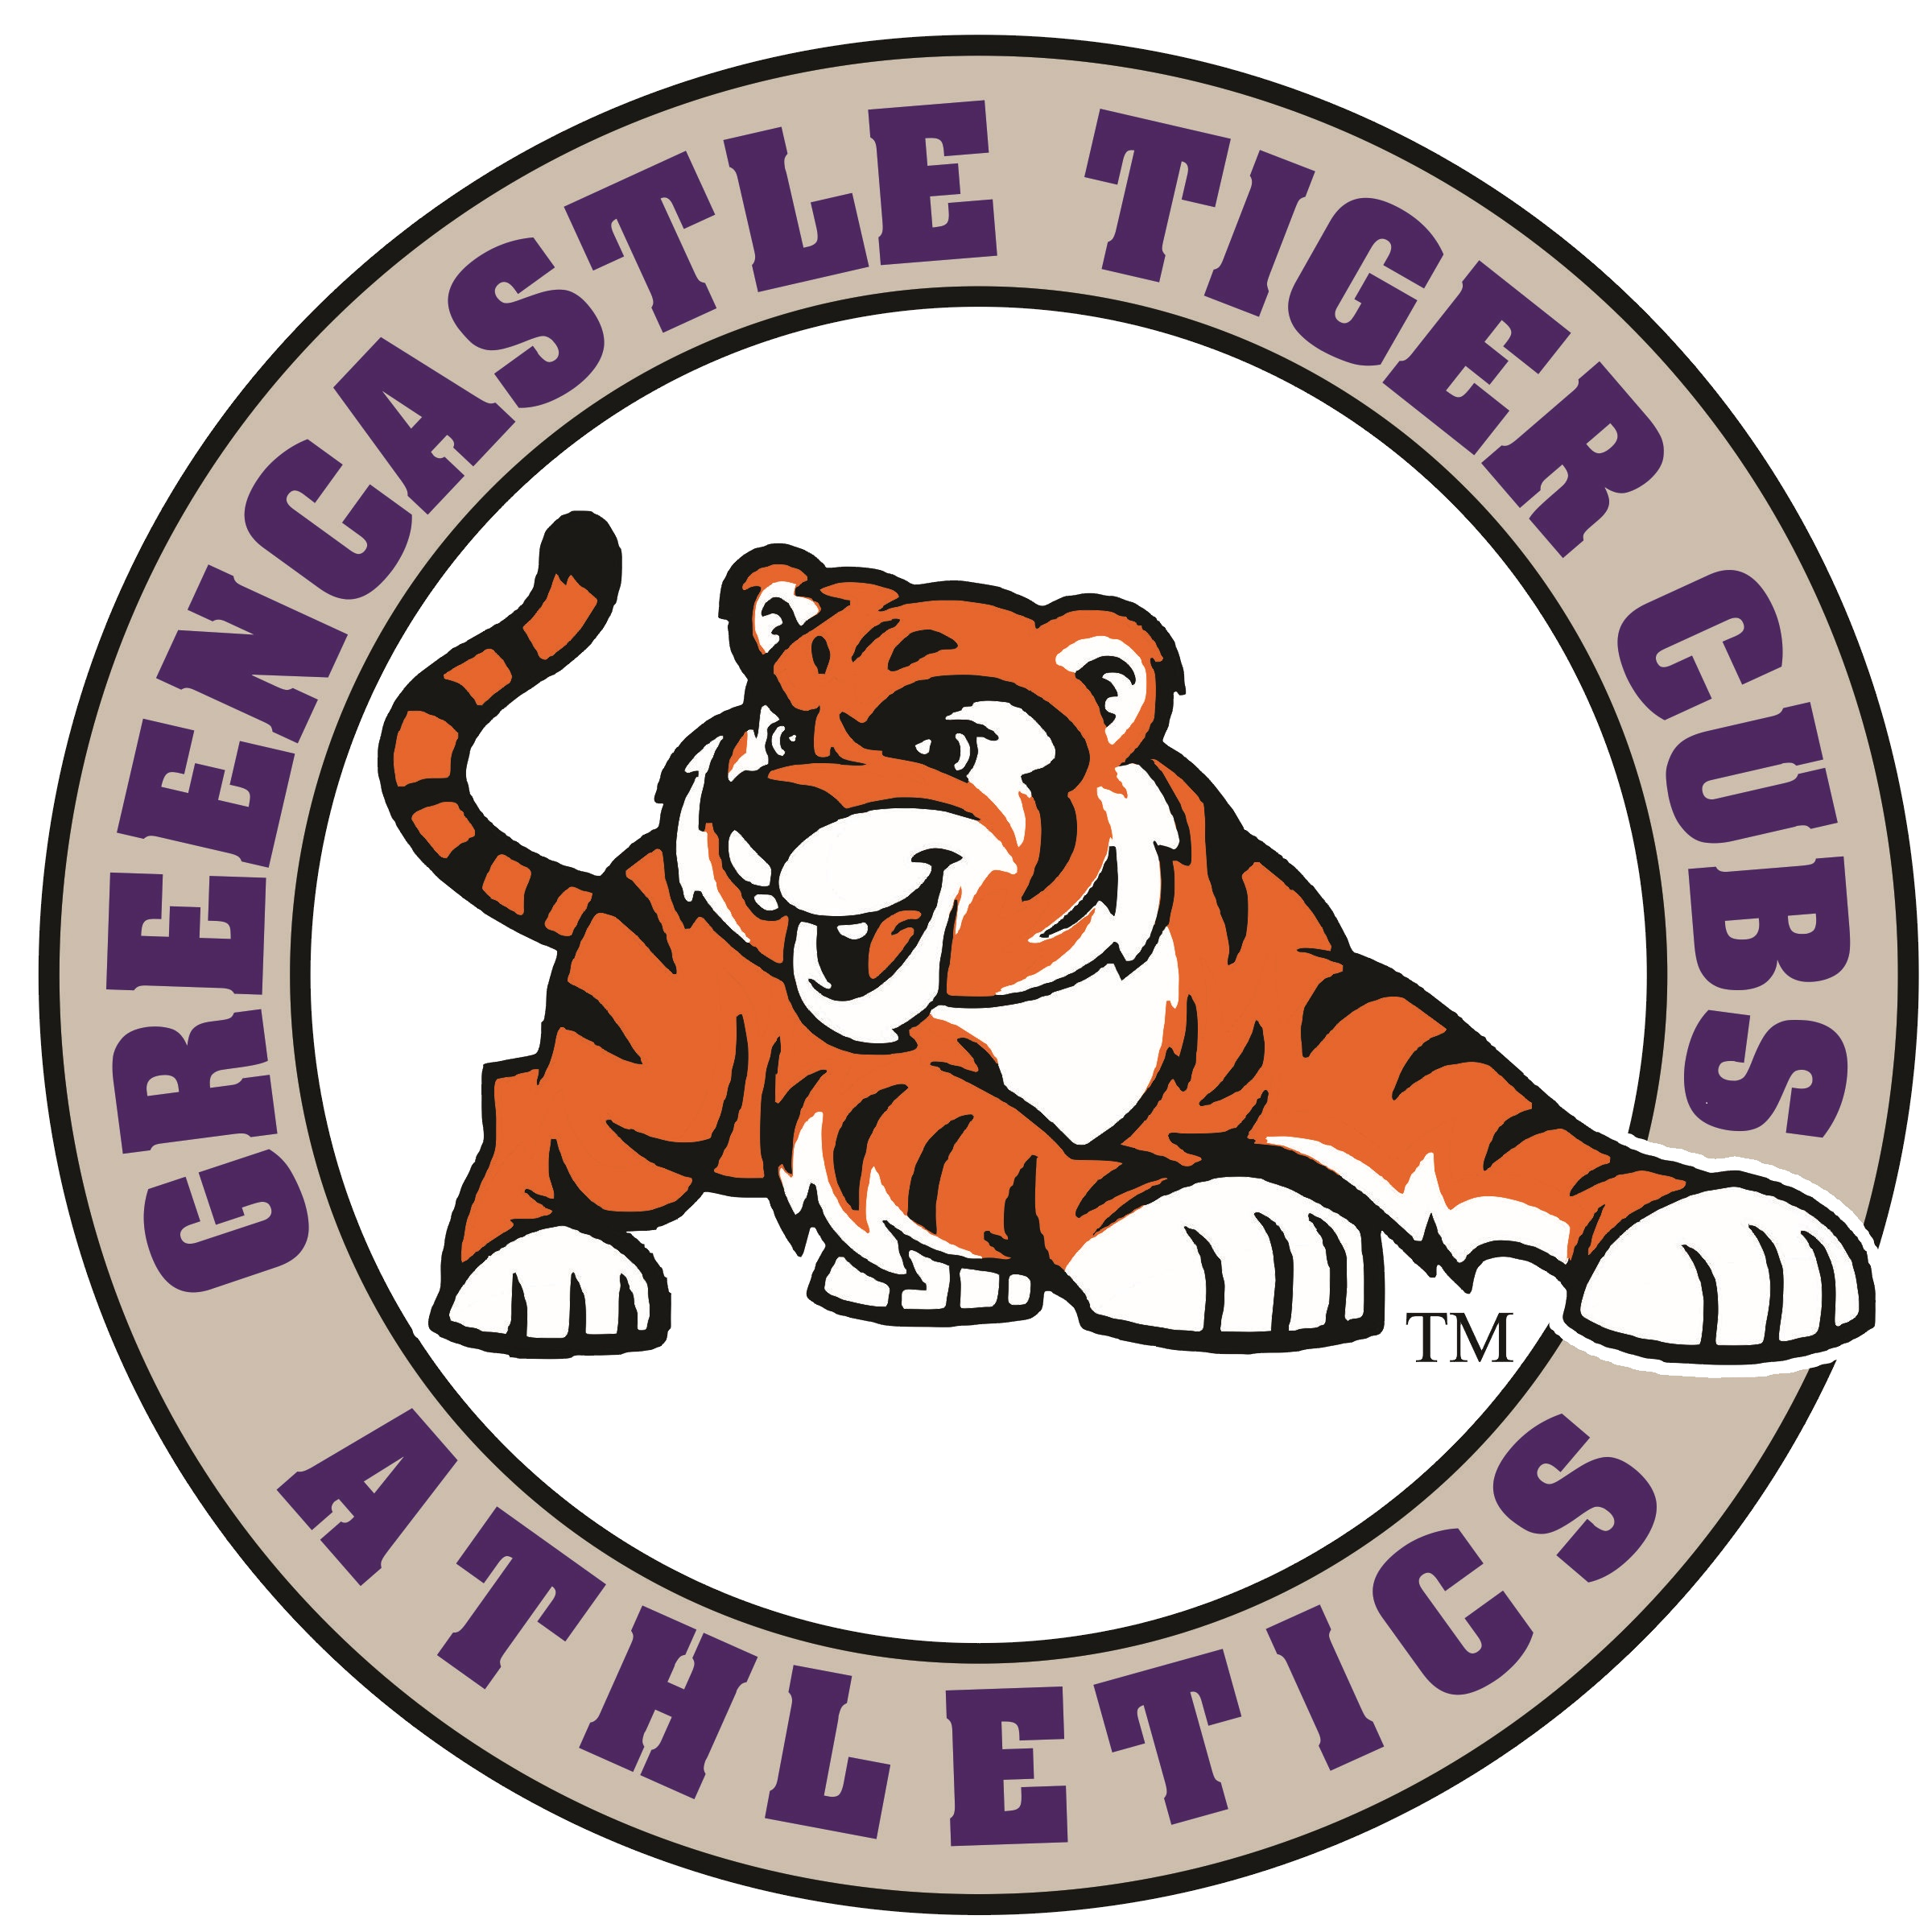 Greencastle Tigers